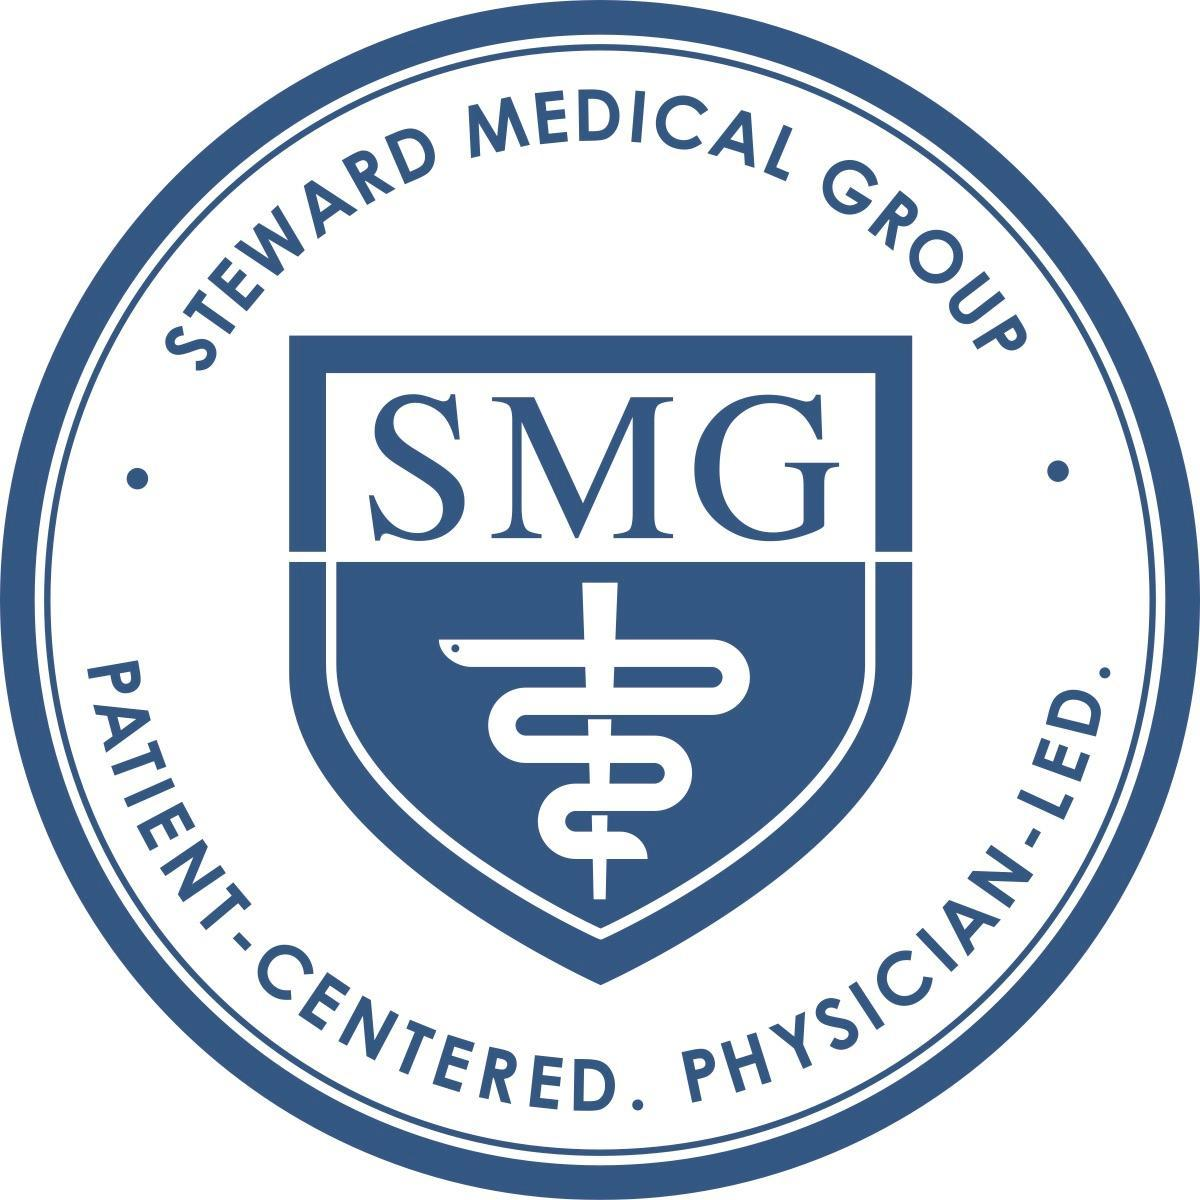 SMG Gastroenterology at St. Elizabeth's Medical Center